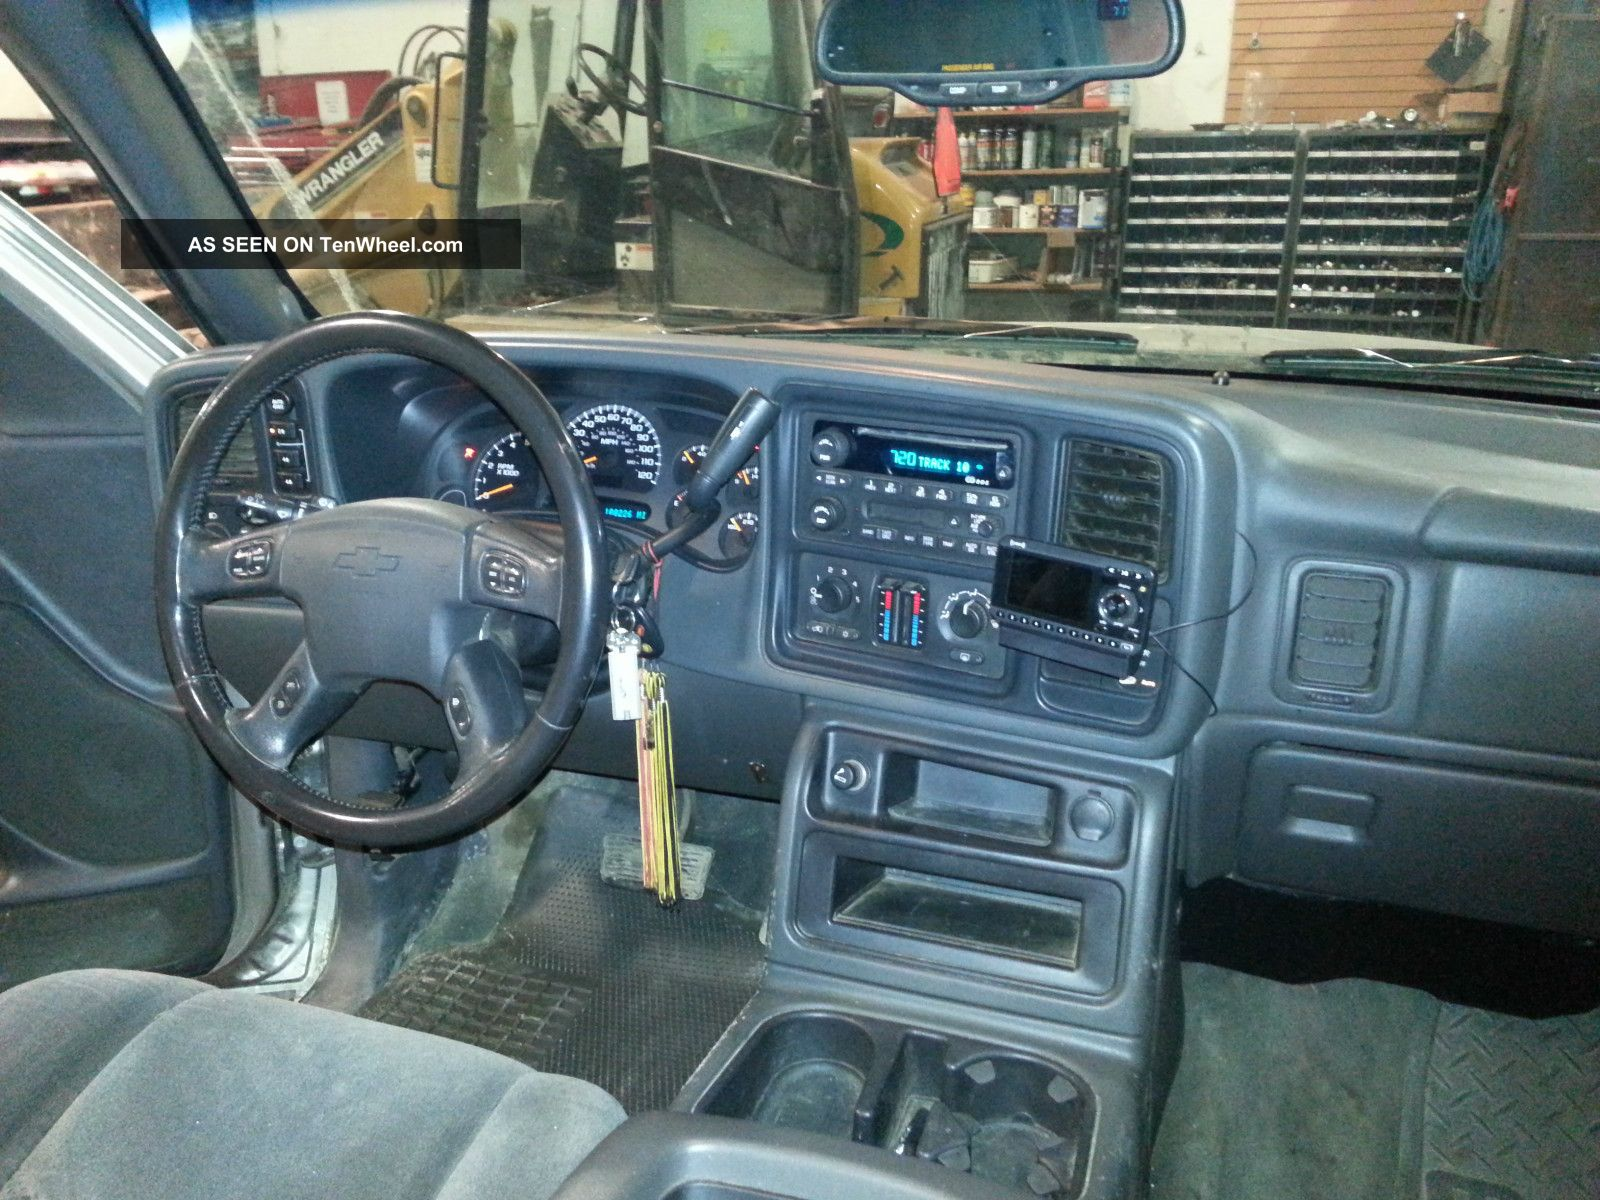 2003 chevy silverado 2500 hd mirror wiring. Black Bedroom Furniture Sets. Home Design Ideas